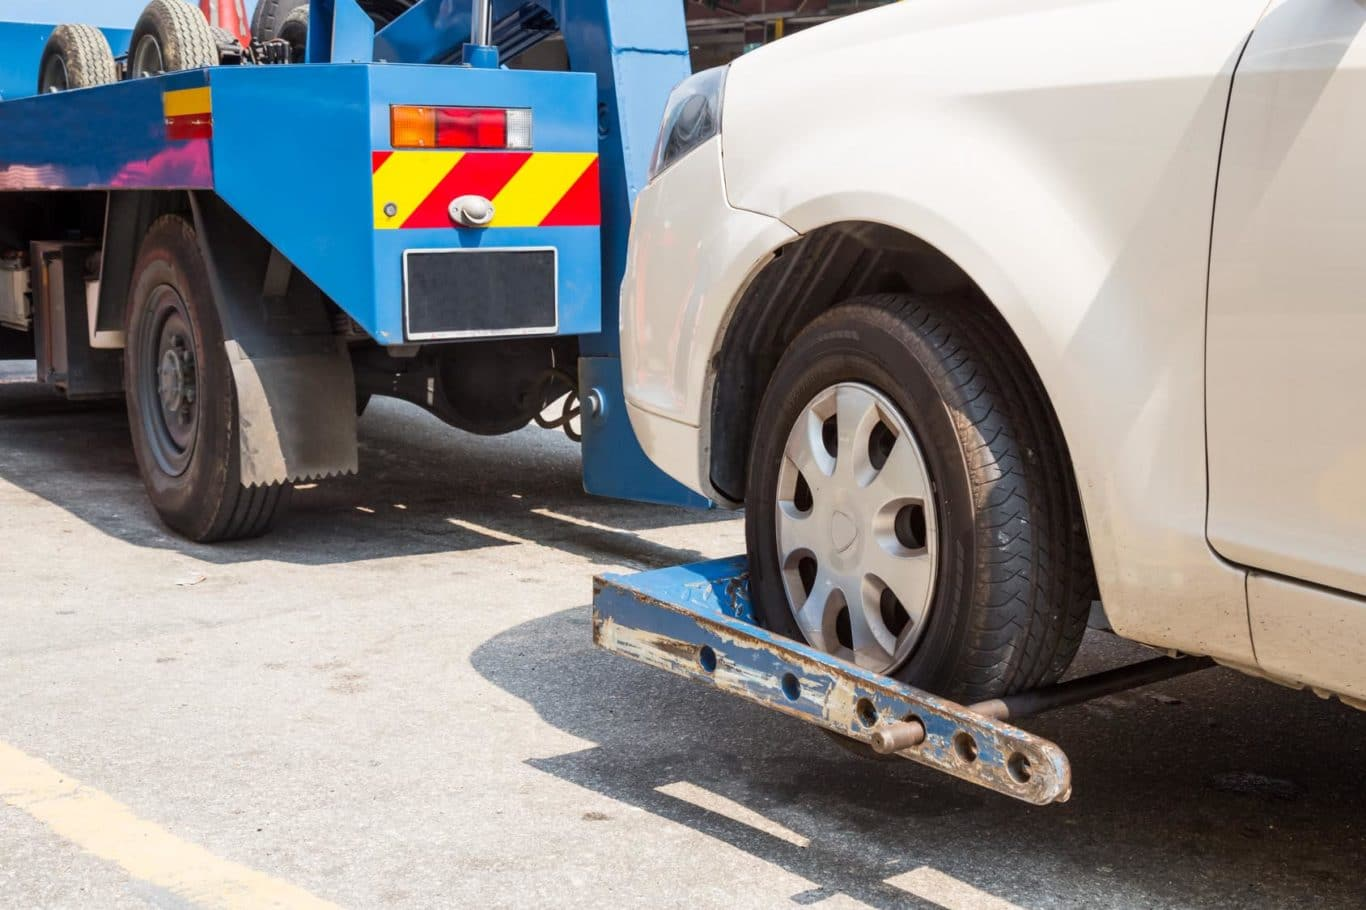 Charlesland expert Car Towing services